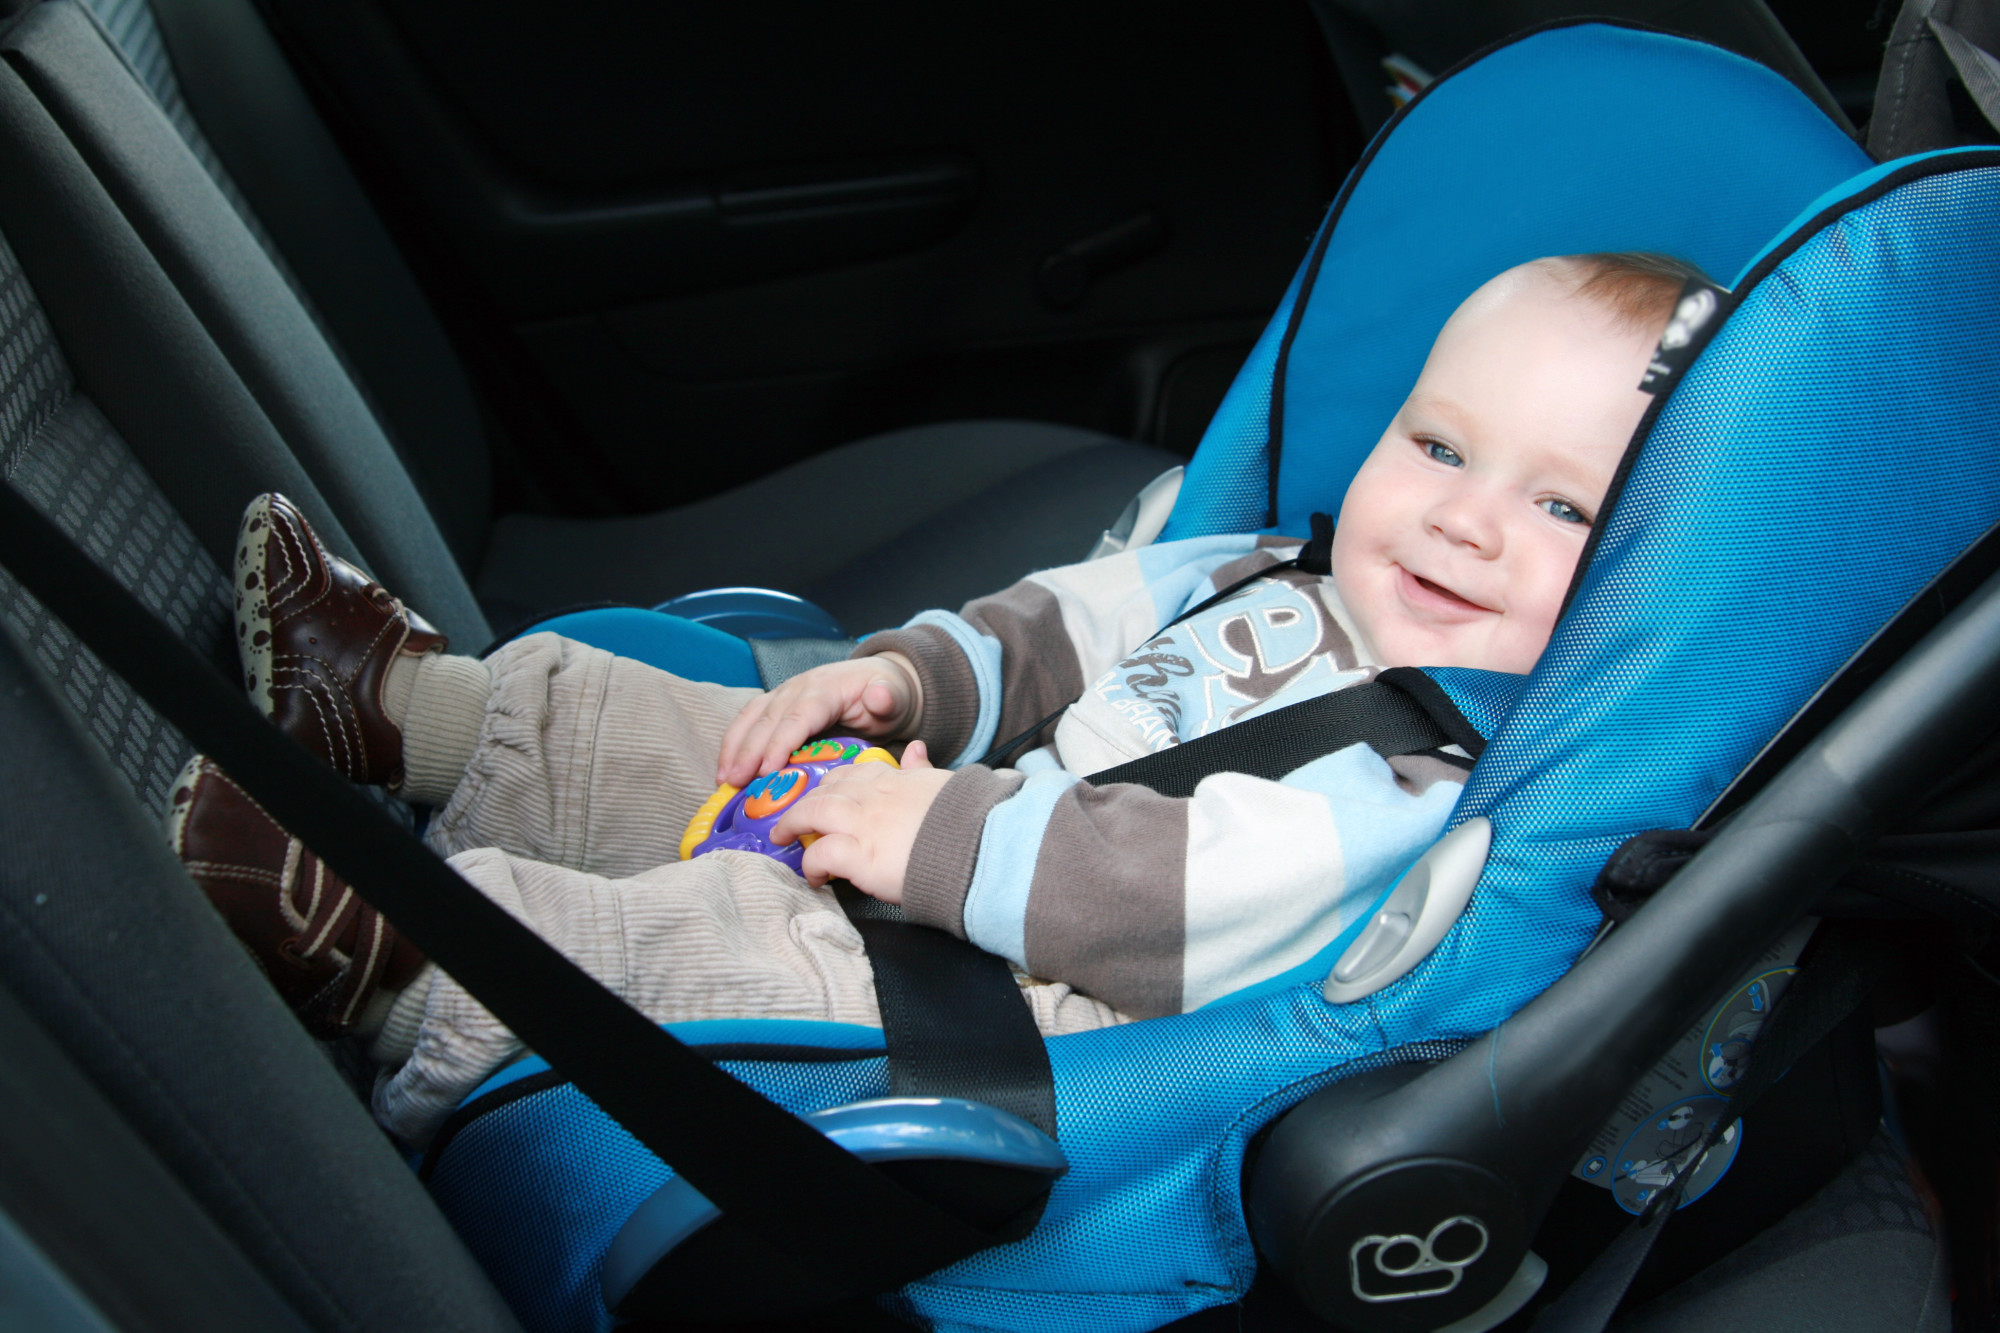 Protect Your Little One: 5 Vital Infant Car Seat Safety Tips for New Parents